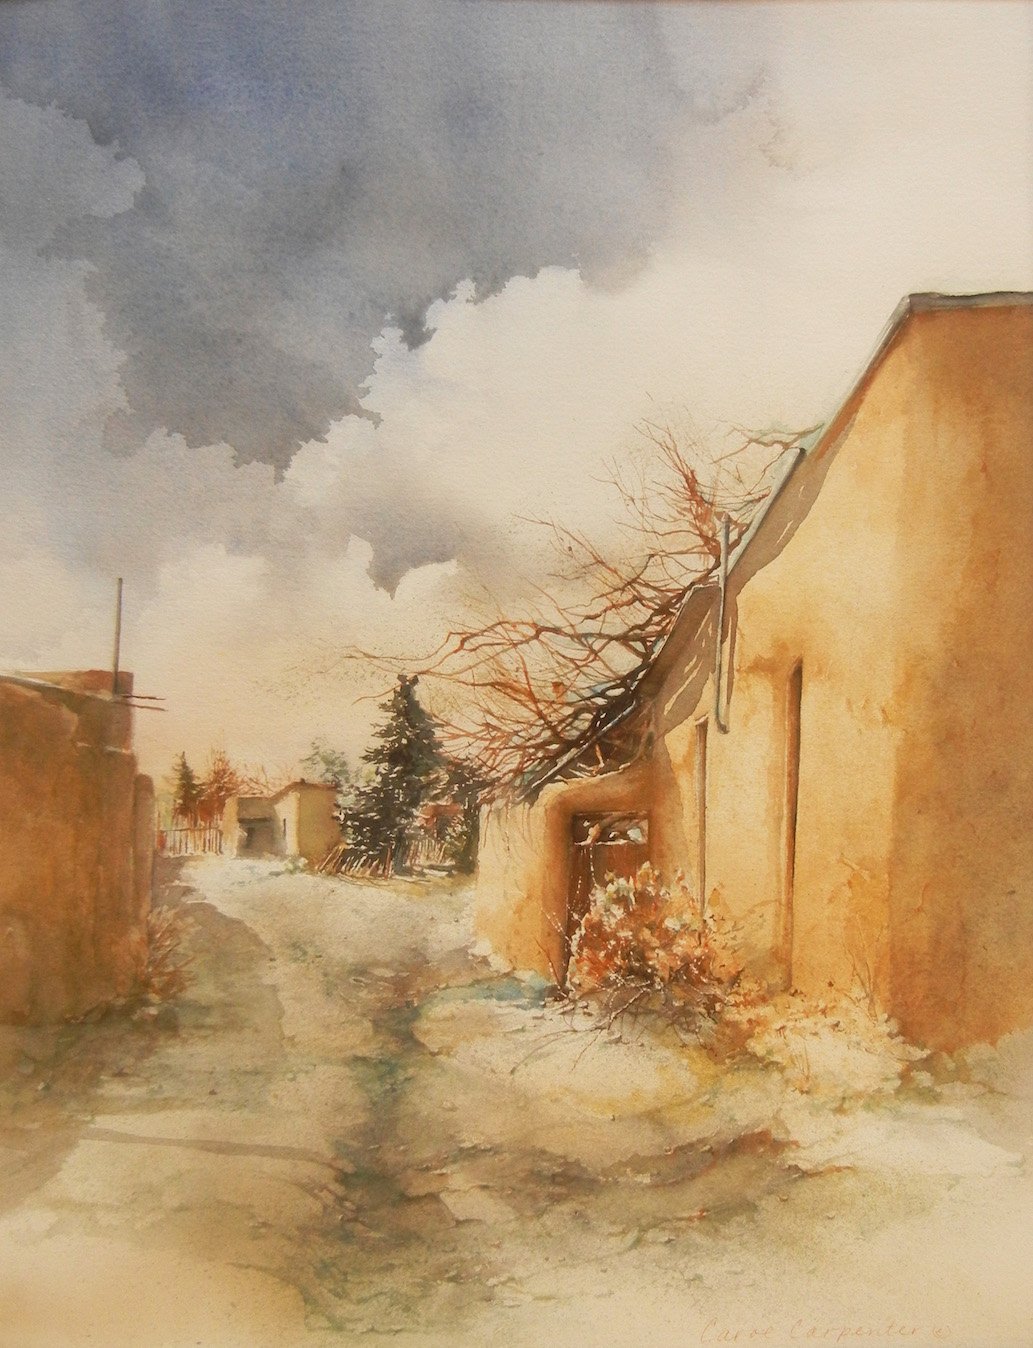 Canyon Road Alley, Carol Carpenter